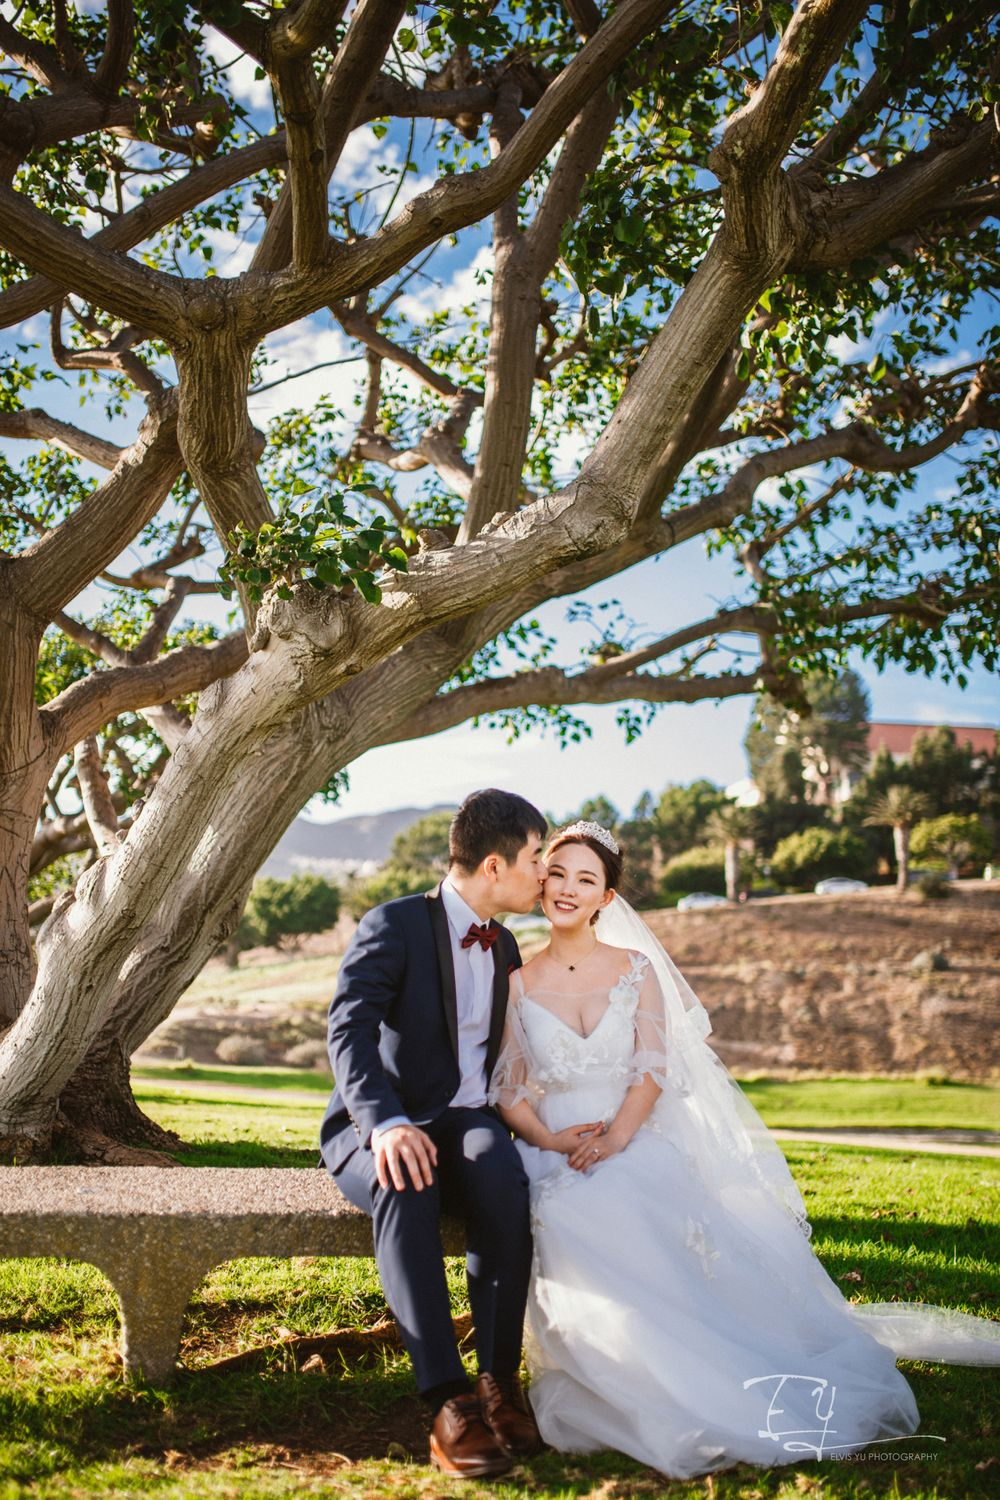 elvis yu photography california engagement wedding day destination wedding los angeles malibu mission inn riverside